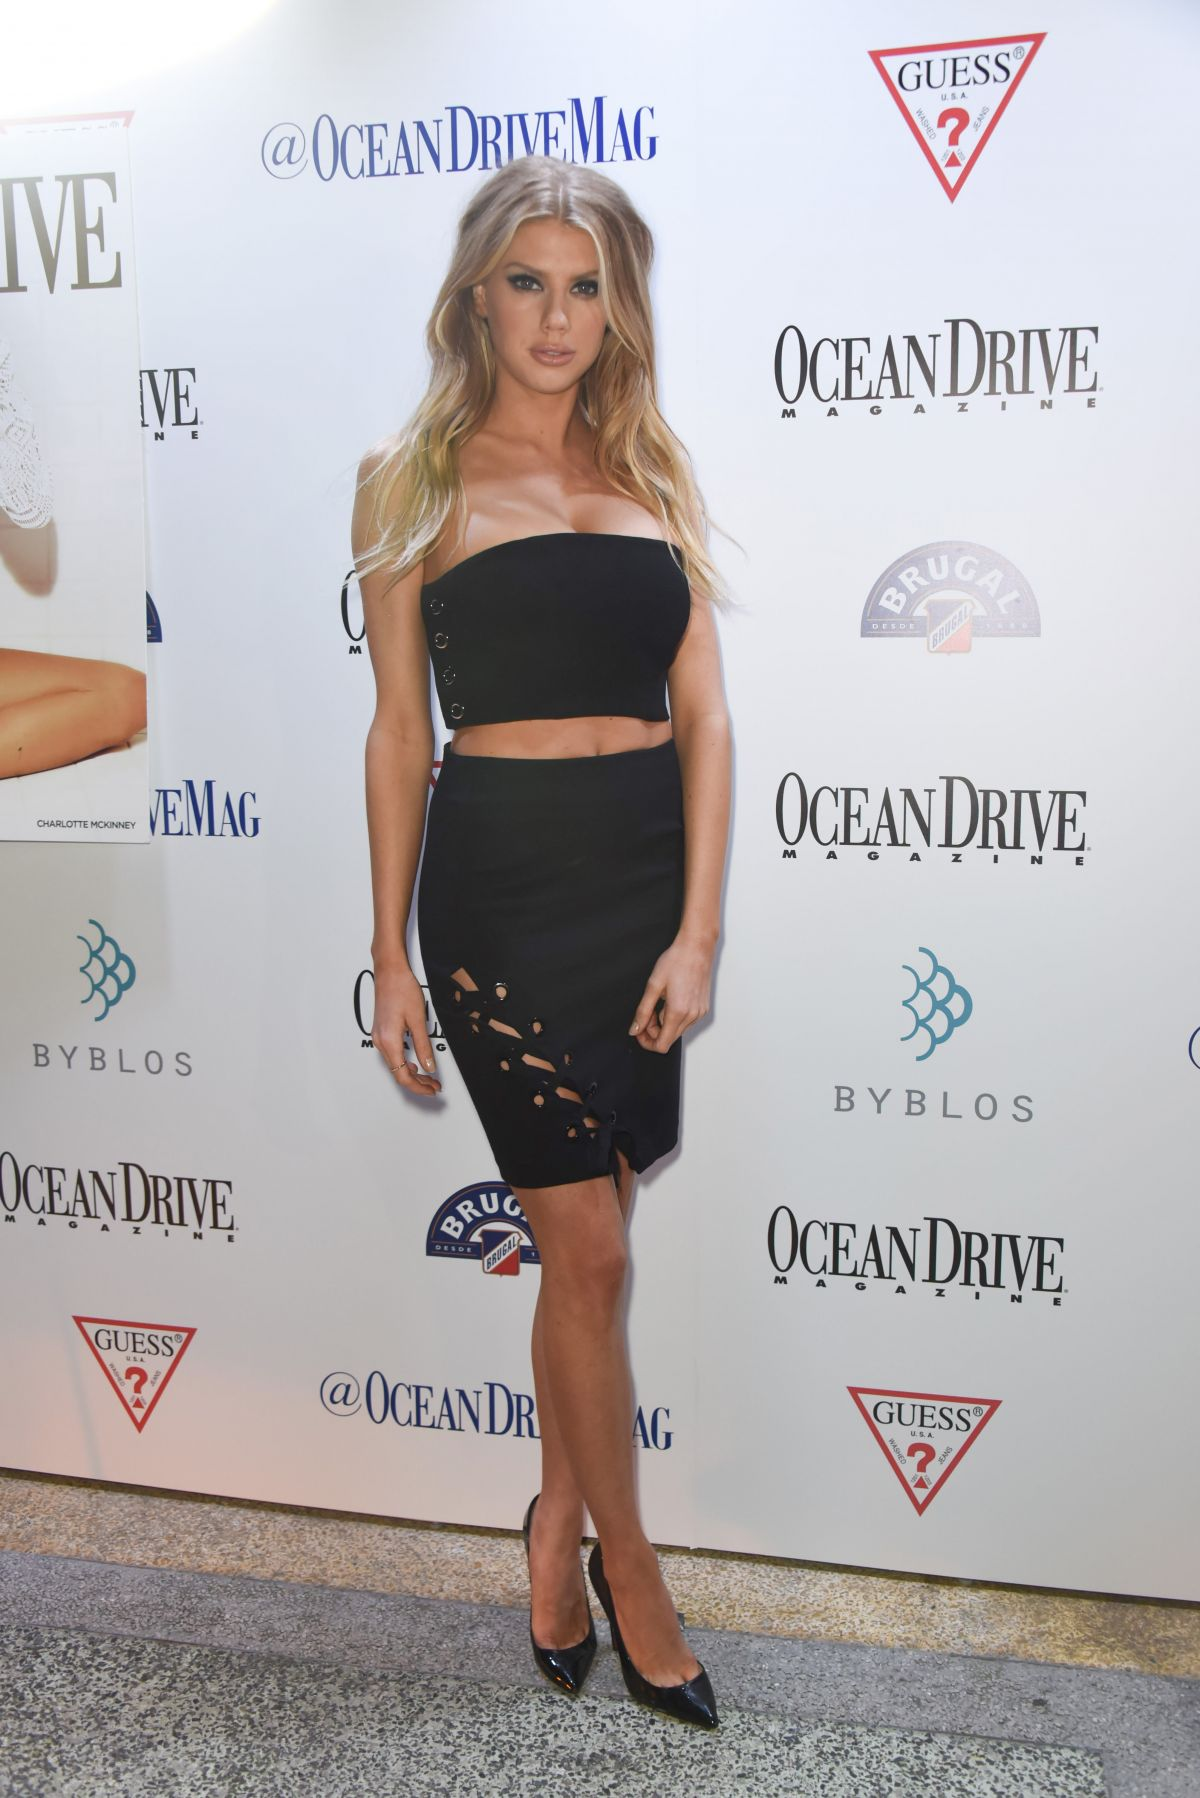 charlotte-mckinney-at-ocean-drive-magazine-celebration-party-in-miami-02-15-2017_3.jpg